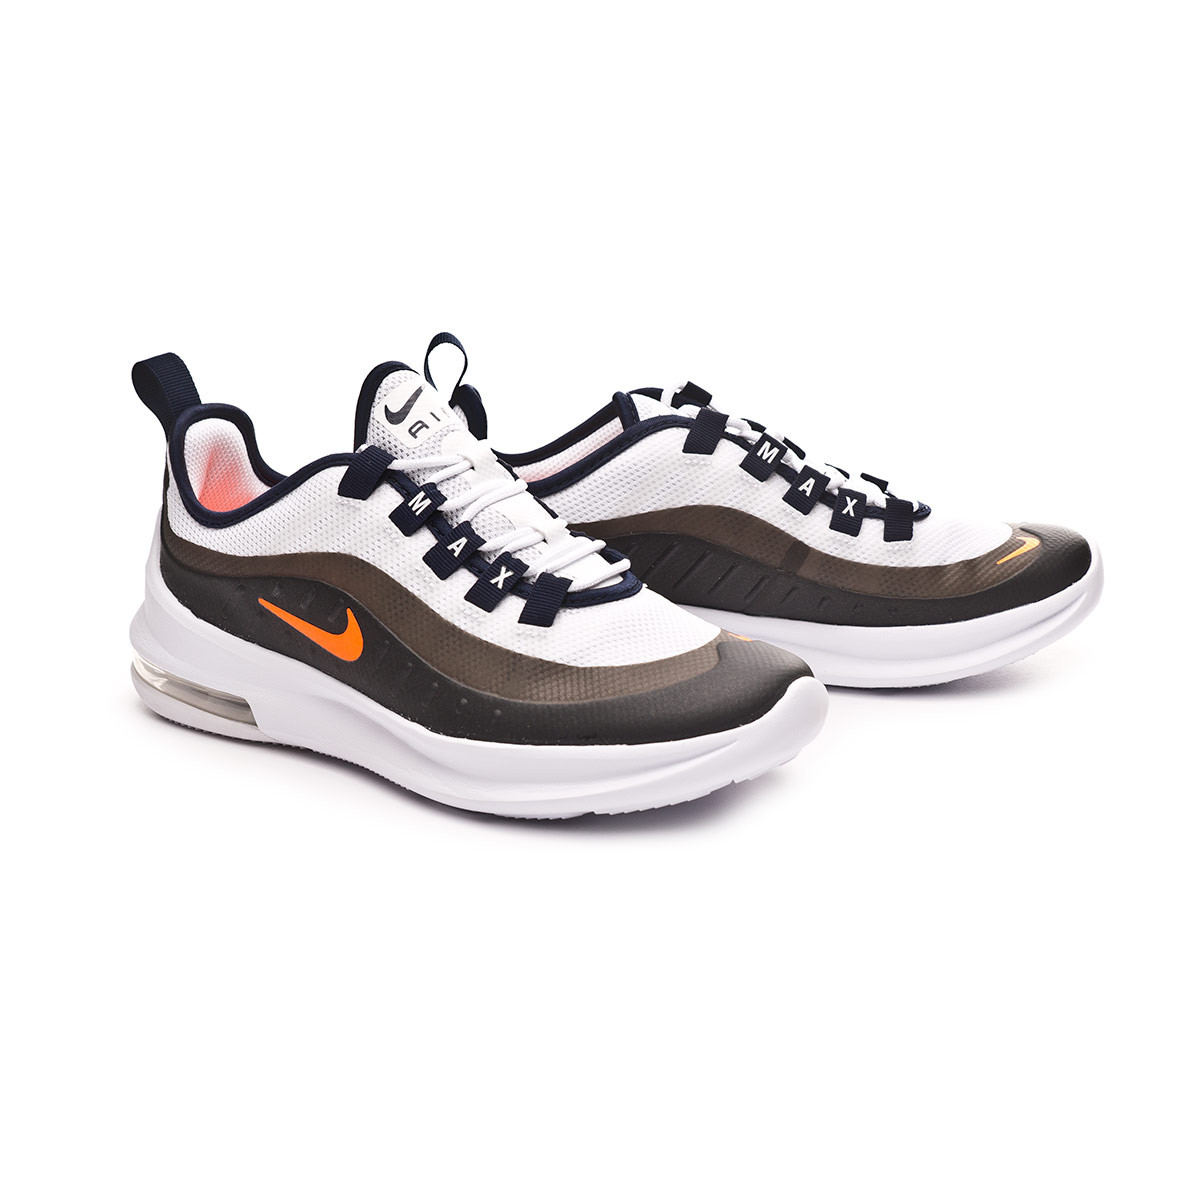 516156fec5 Trainers Nike Kids Air Max Axis White-Total orange-Obsidian - Football  store Fútbol Emotion